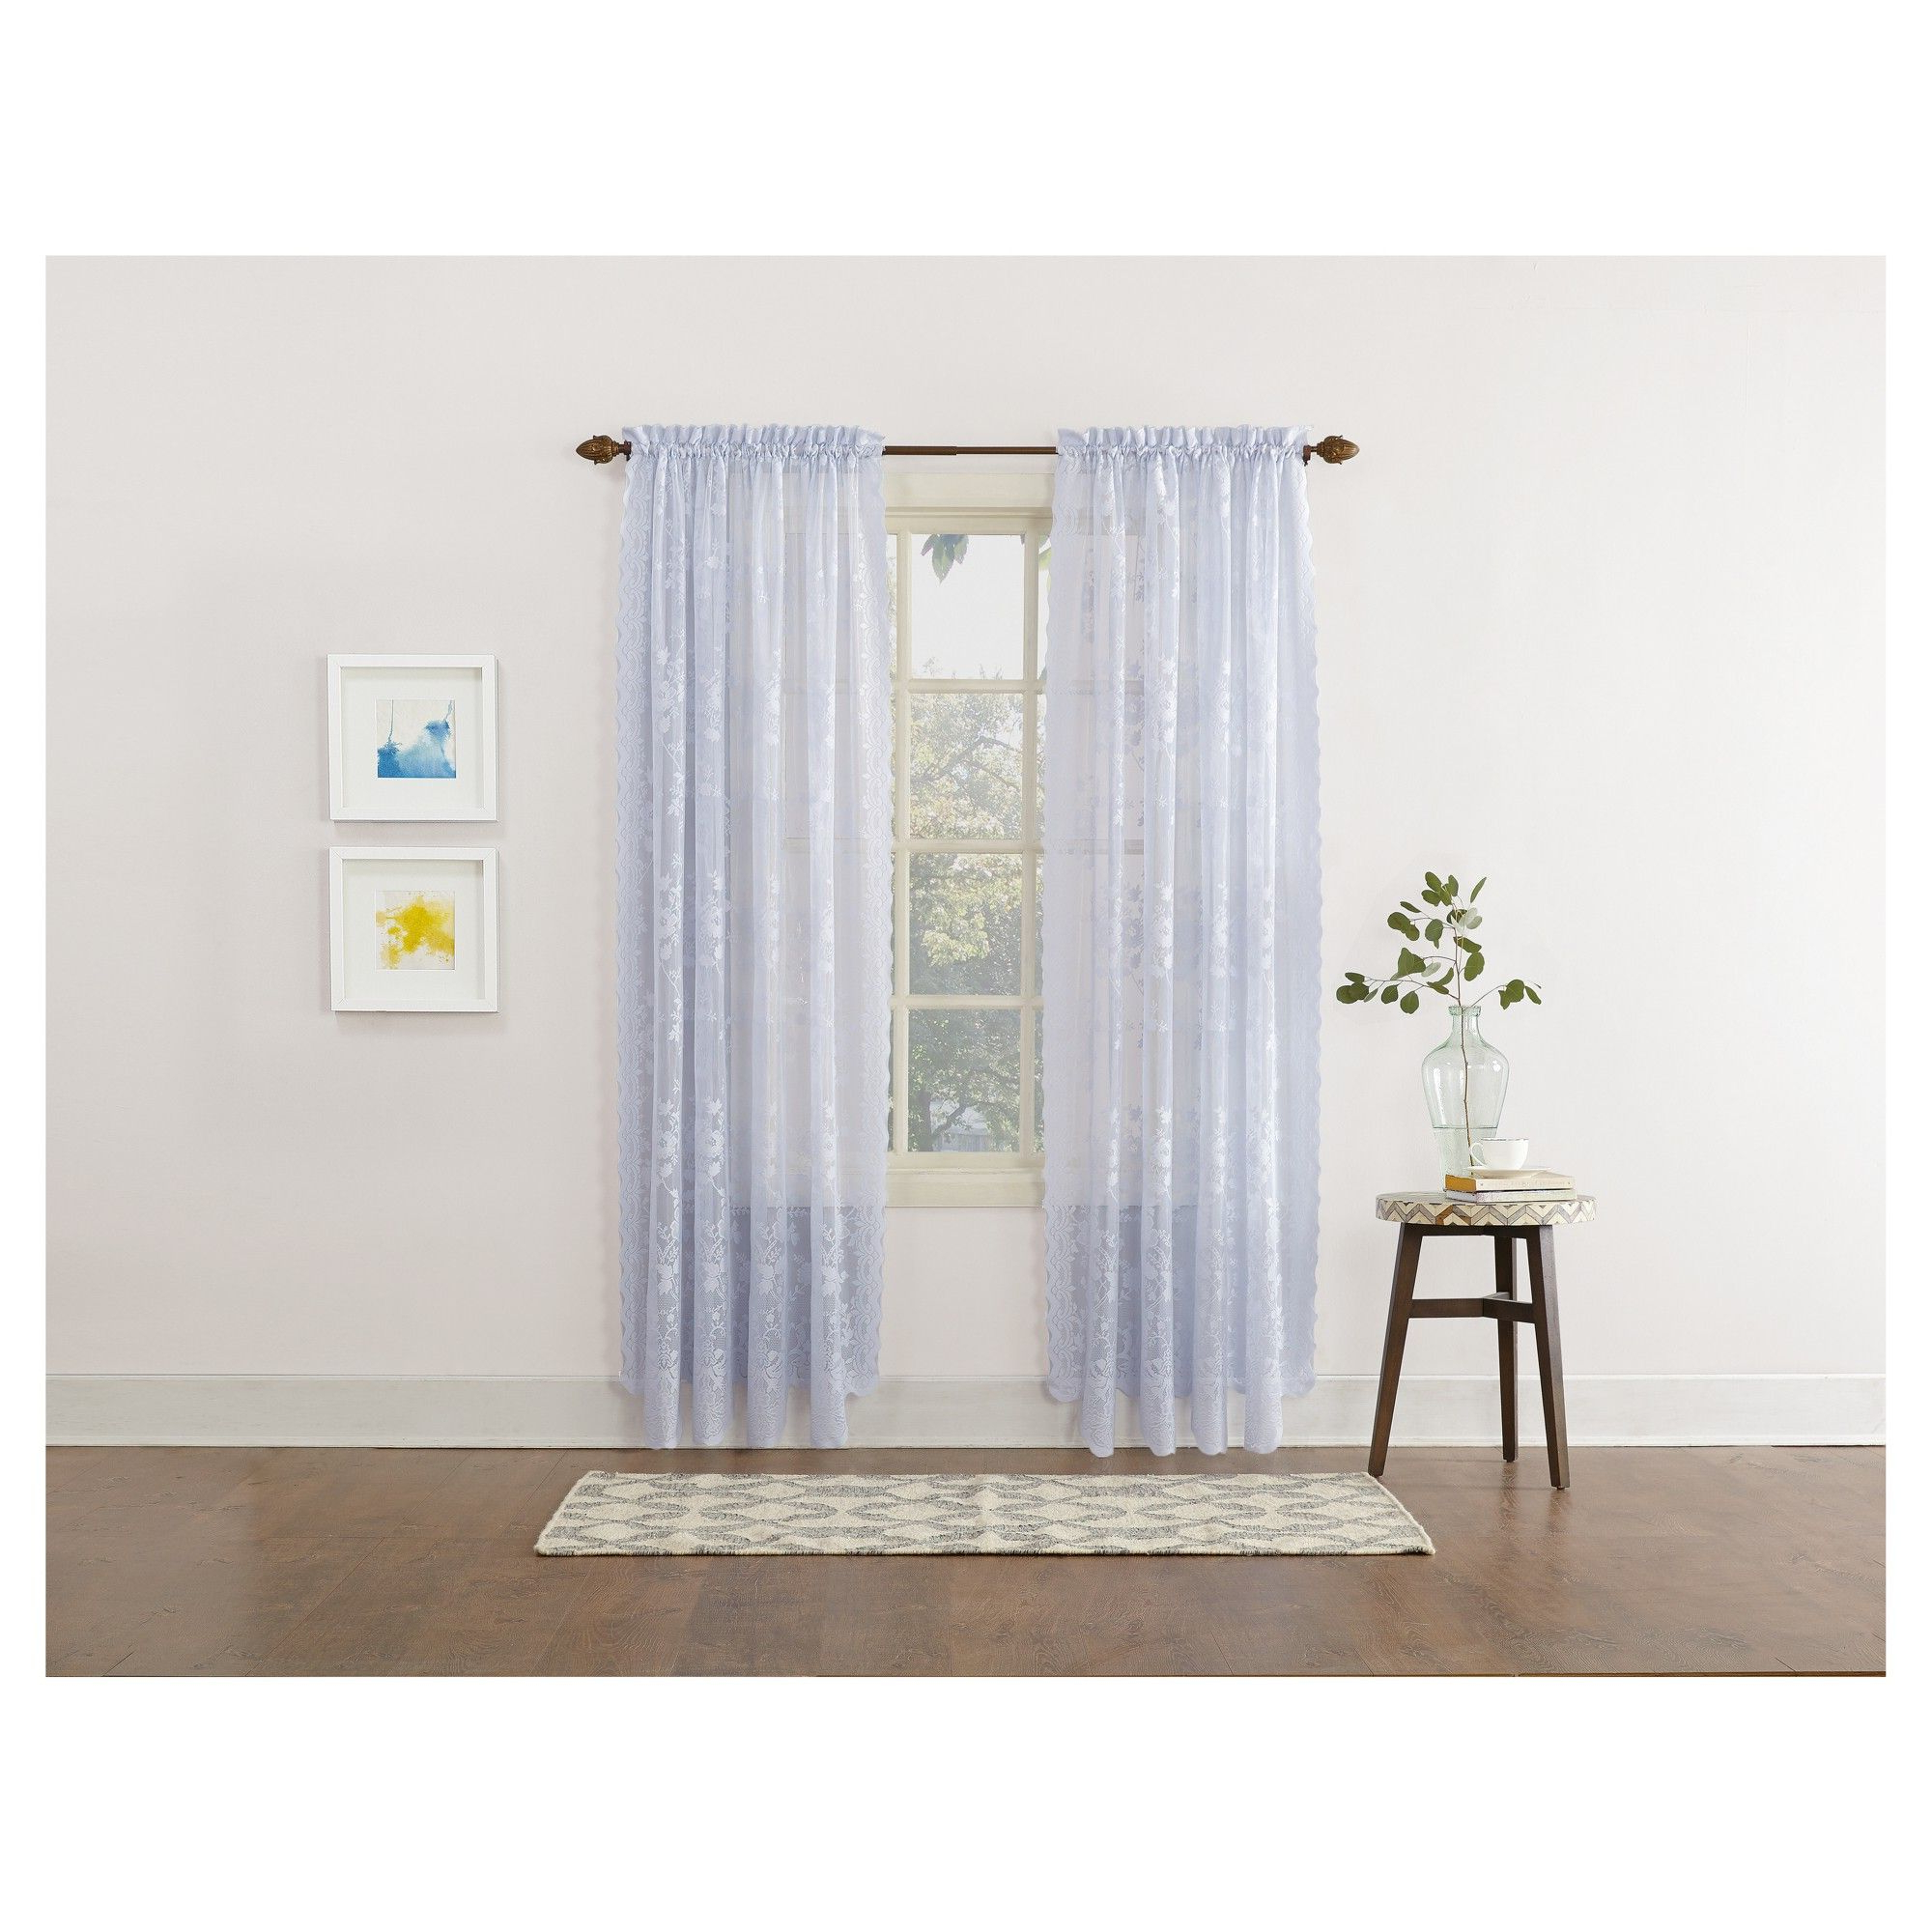 Alison Floral Sheer Lace Rod Pocket Curtain Panel Blue 58 Intended For Fashionable Alison Rod Pocket Lace Window Curtain Panels (View 7 of 20)